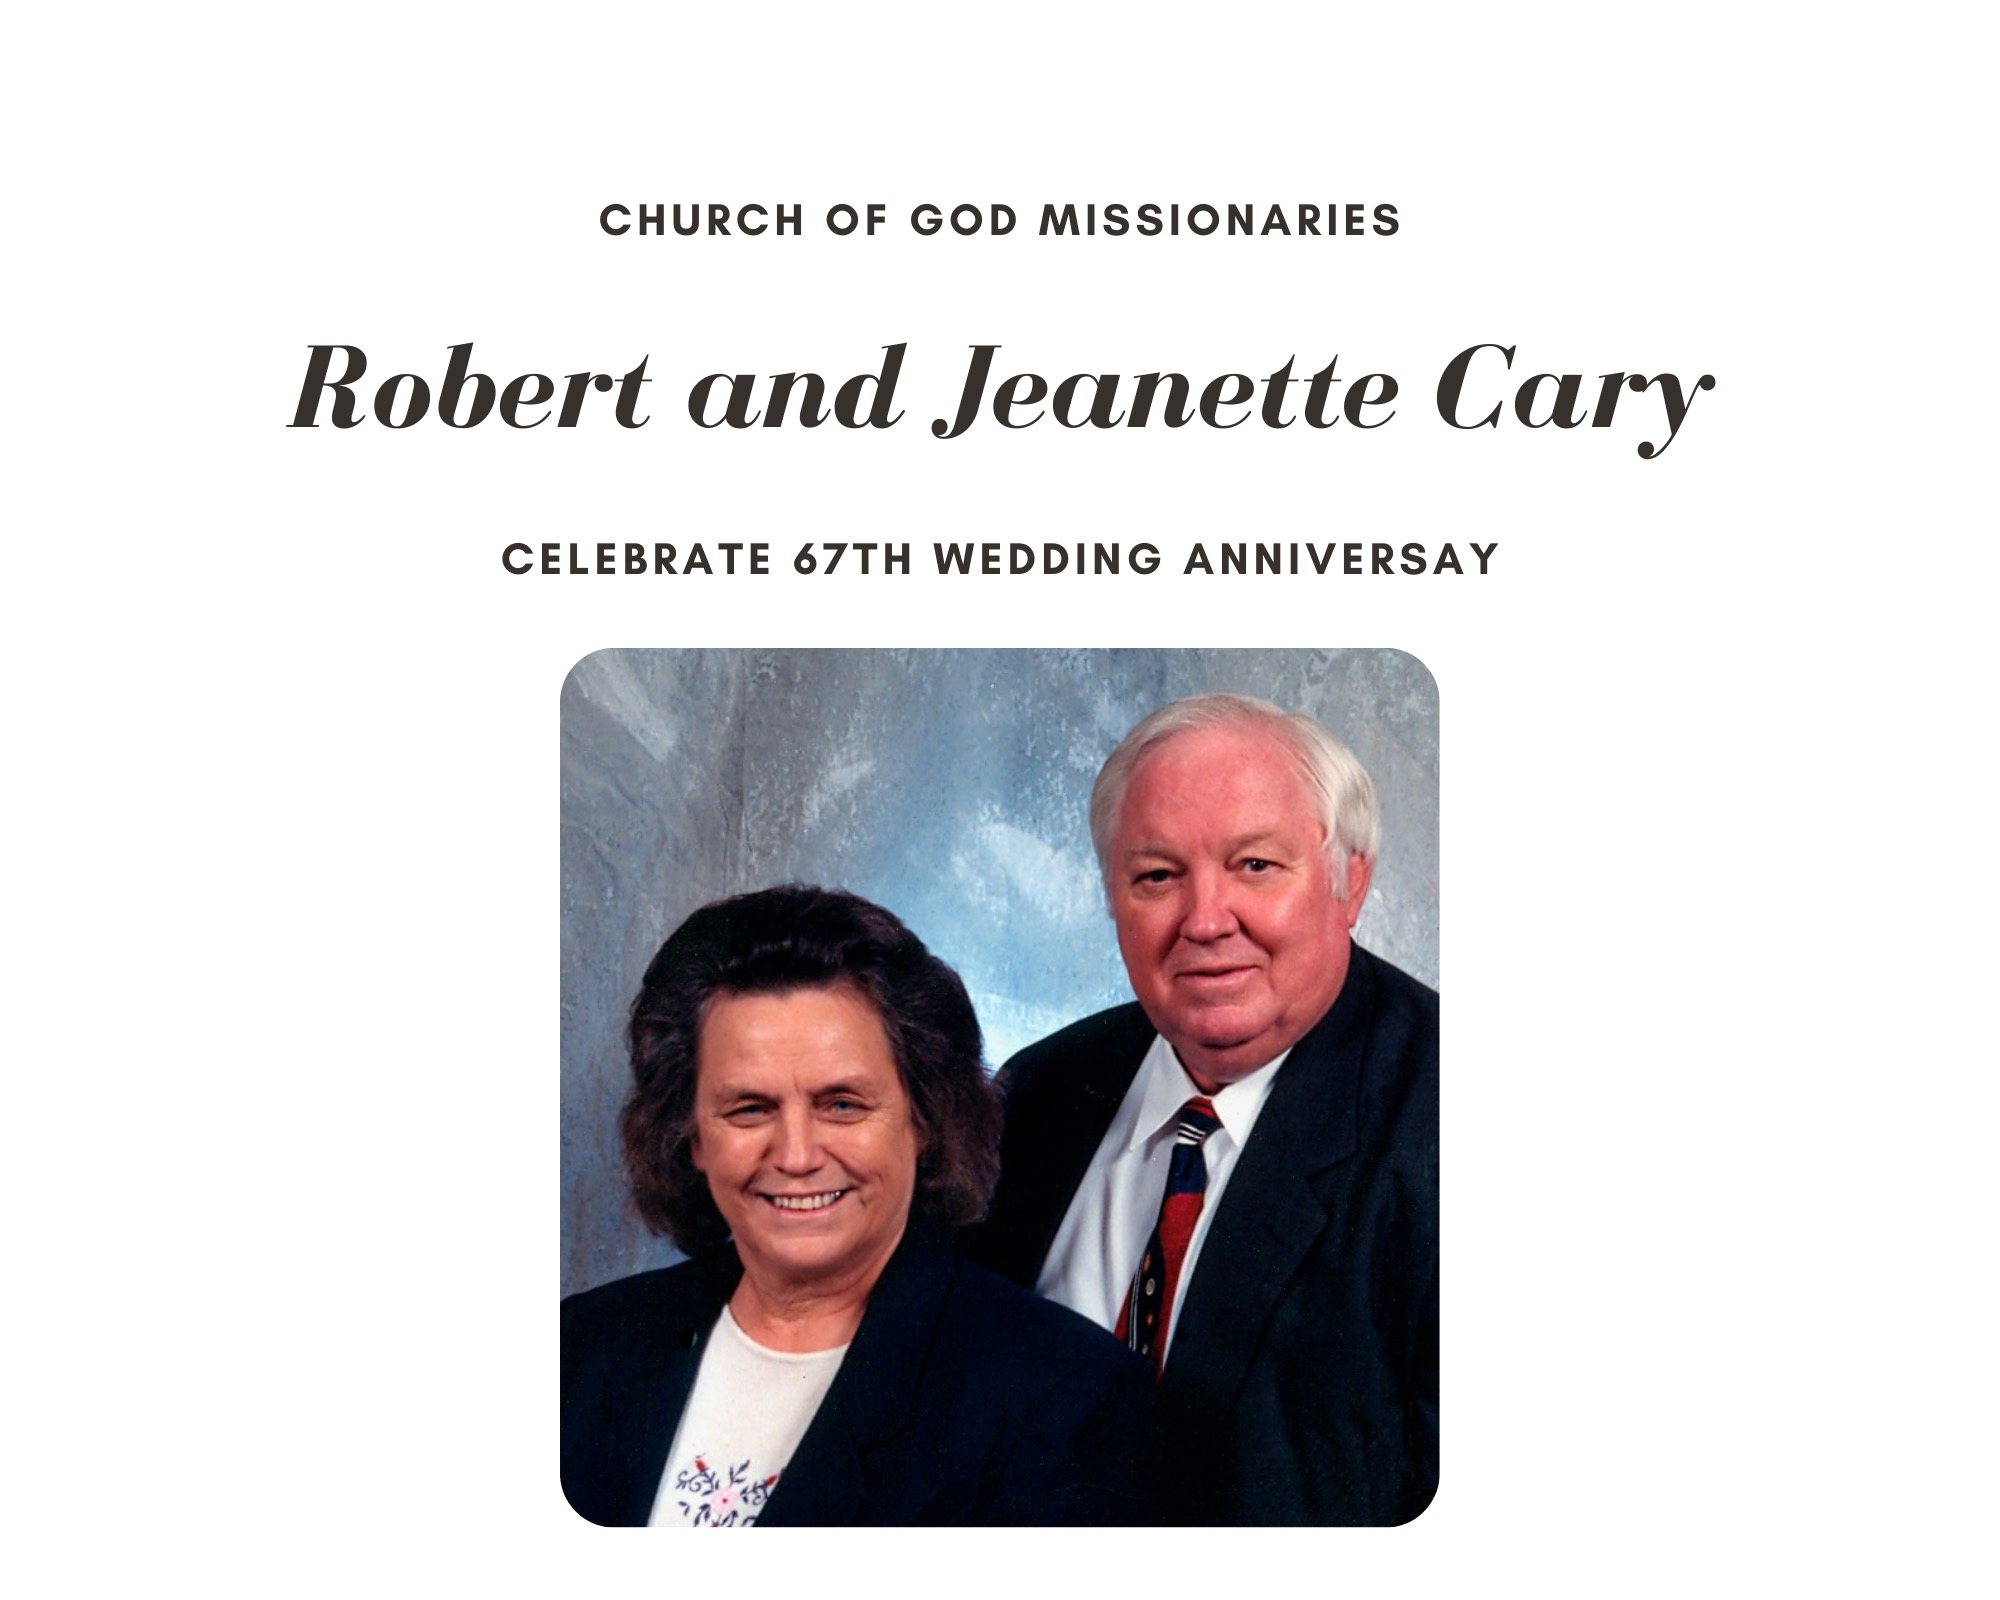 Robert and Jeanette Cary's 67th Wedding Anniversary